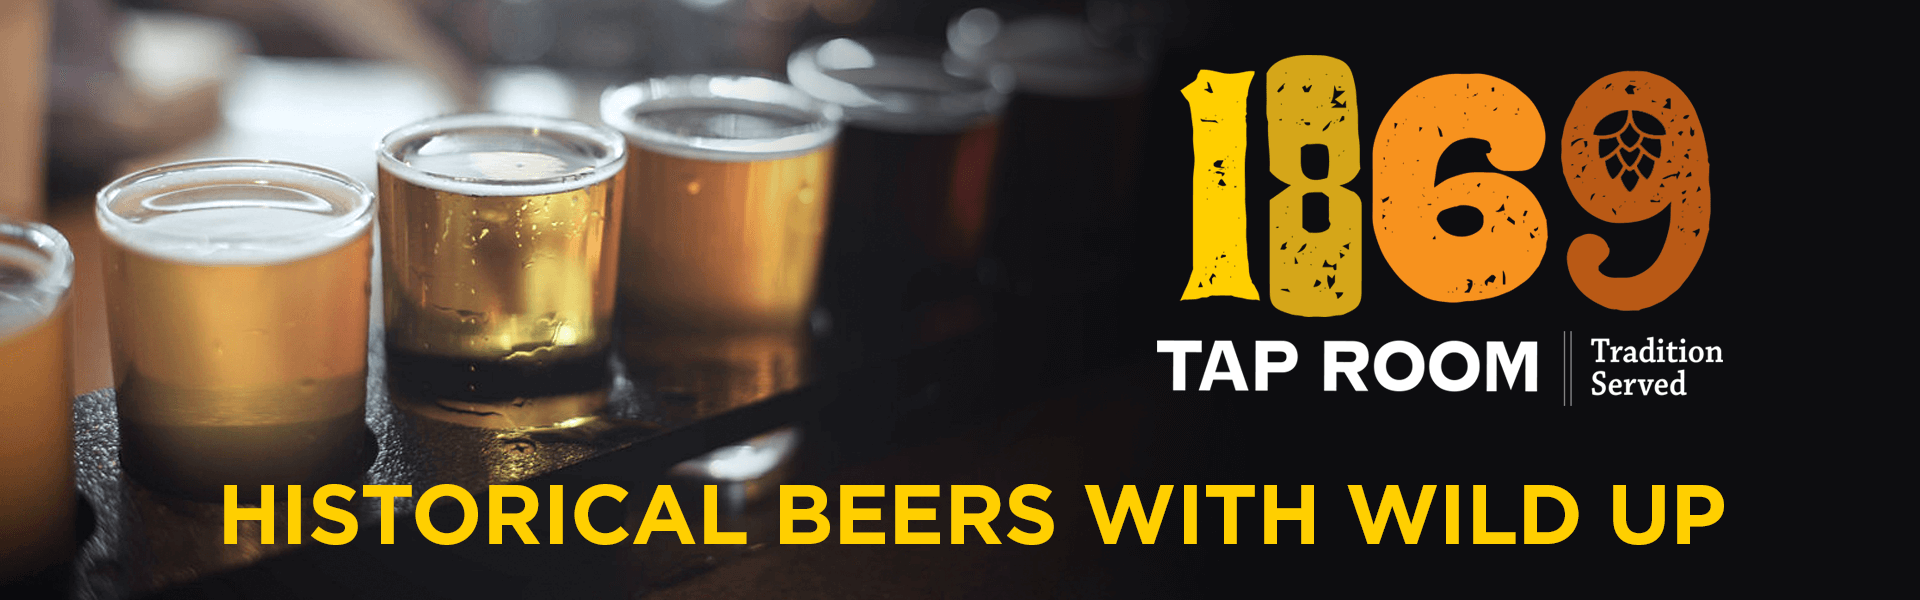 Historical Beers with wild Up at 1869 Tap Room